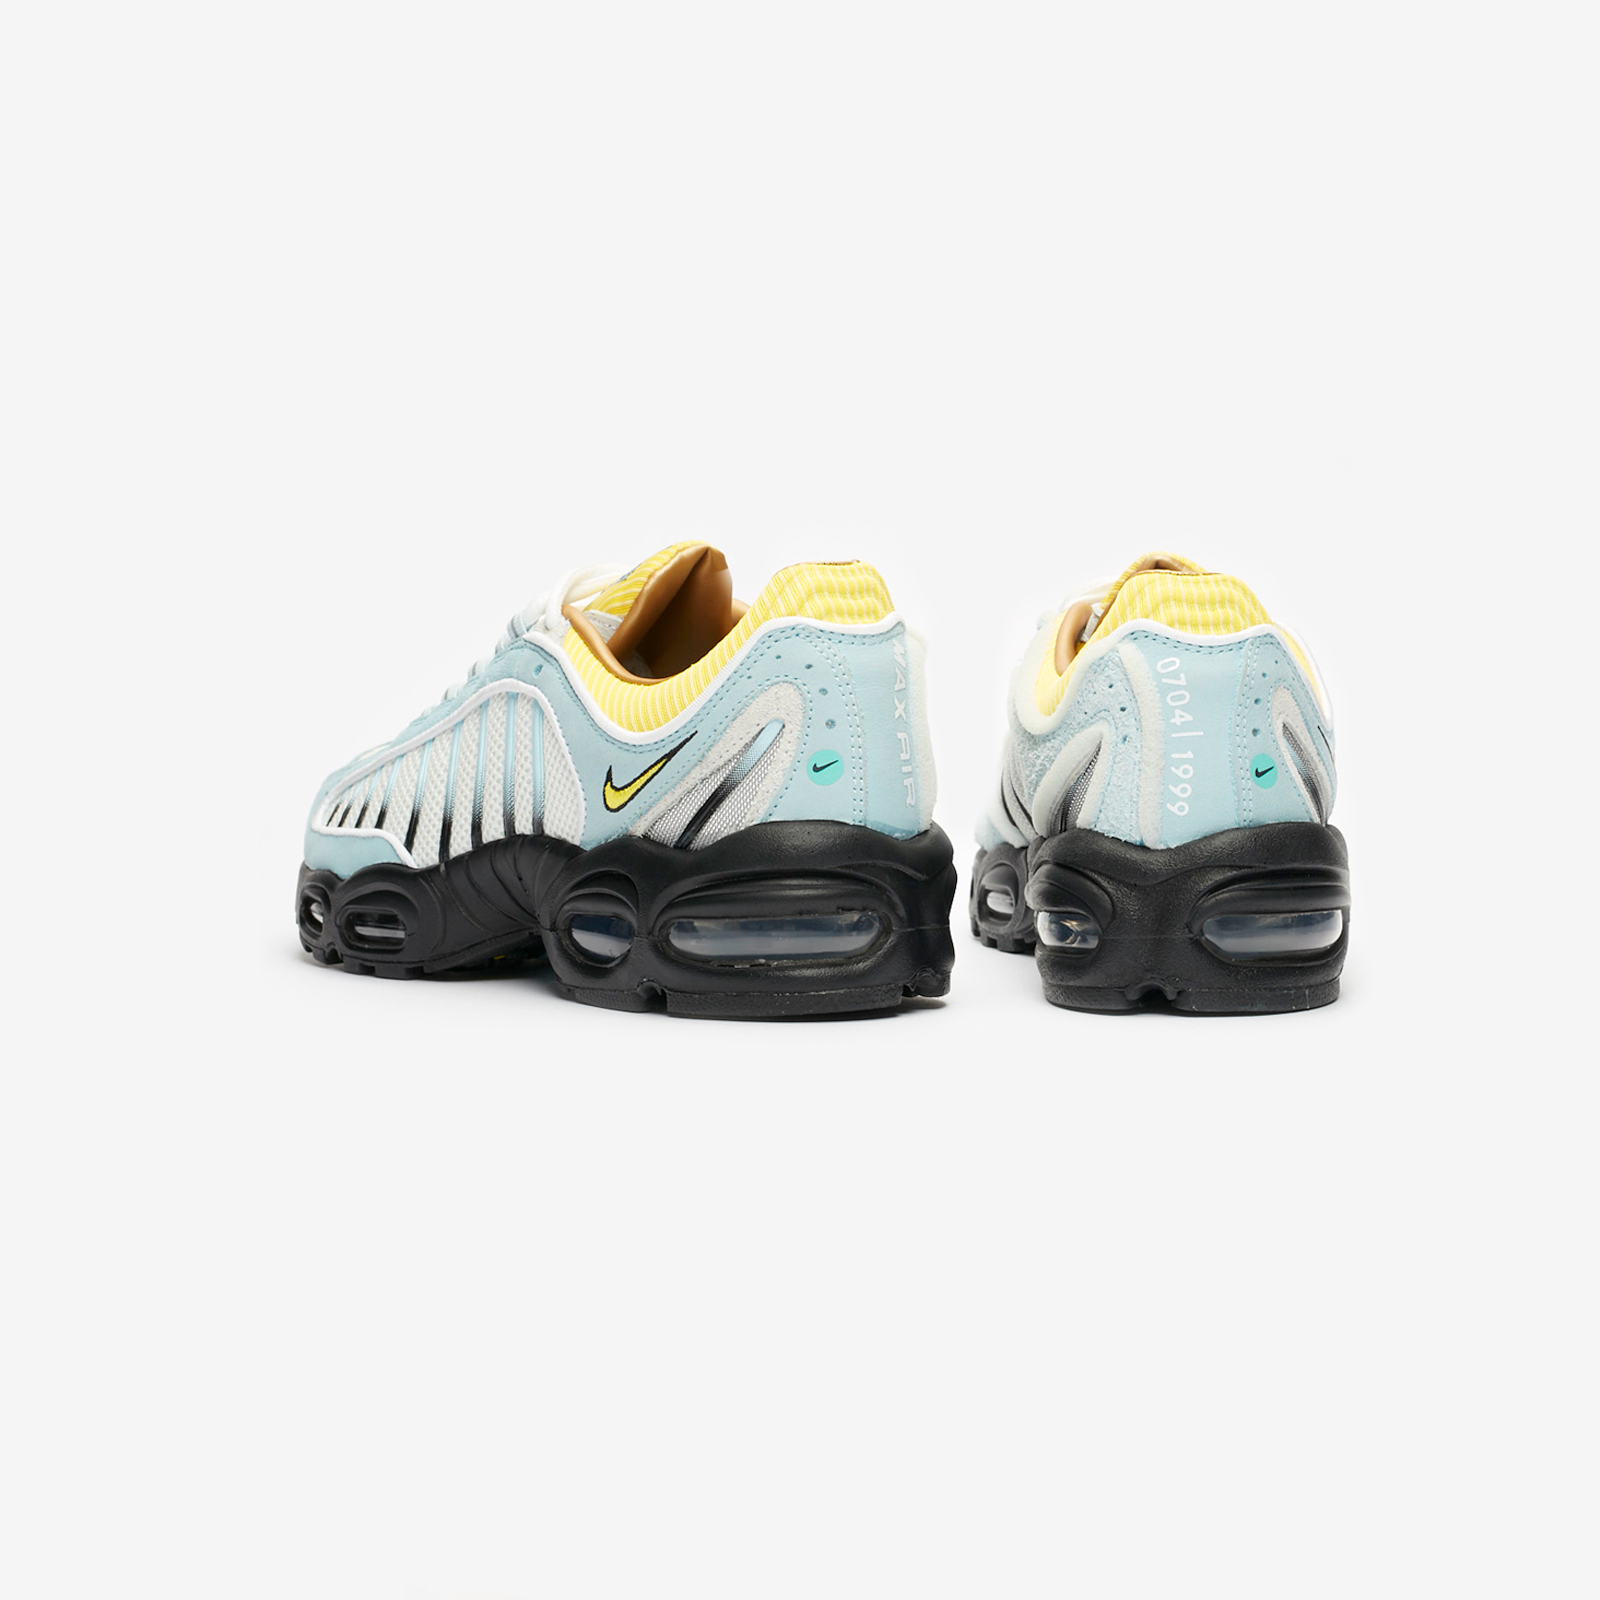 Sneakersnstuff Nike Air Max Tailwind 4 IV 20th Anniversary